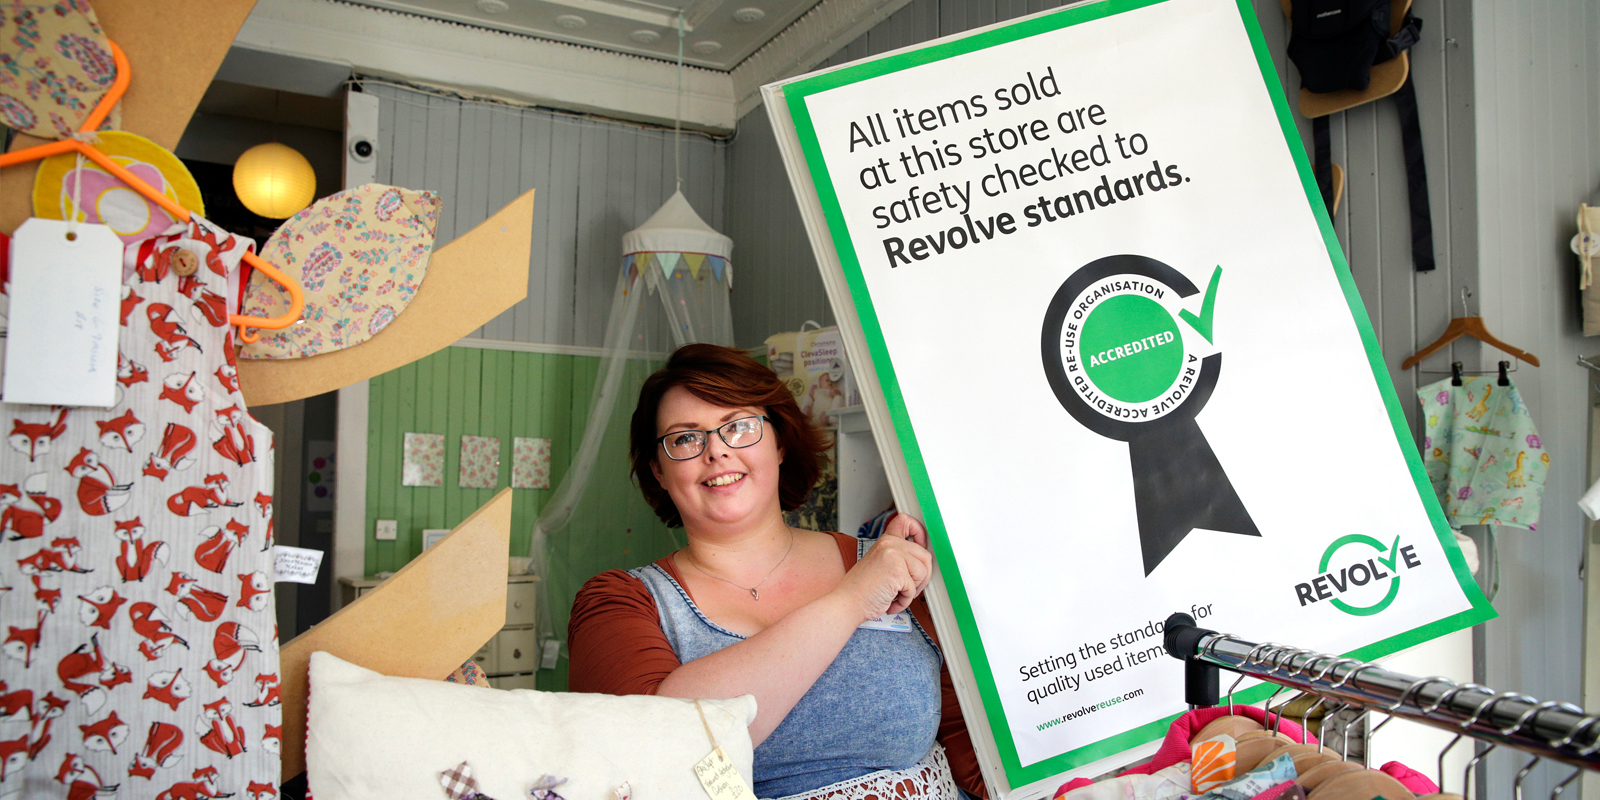 Revolve is a re-use quality standard for shops who sell second hand goods in Scotland